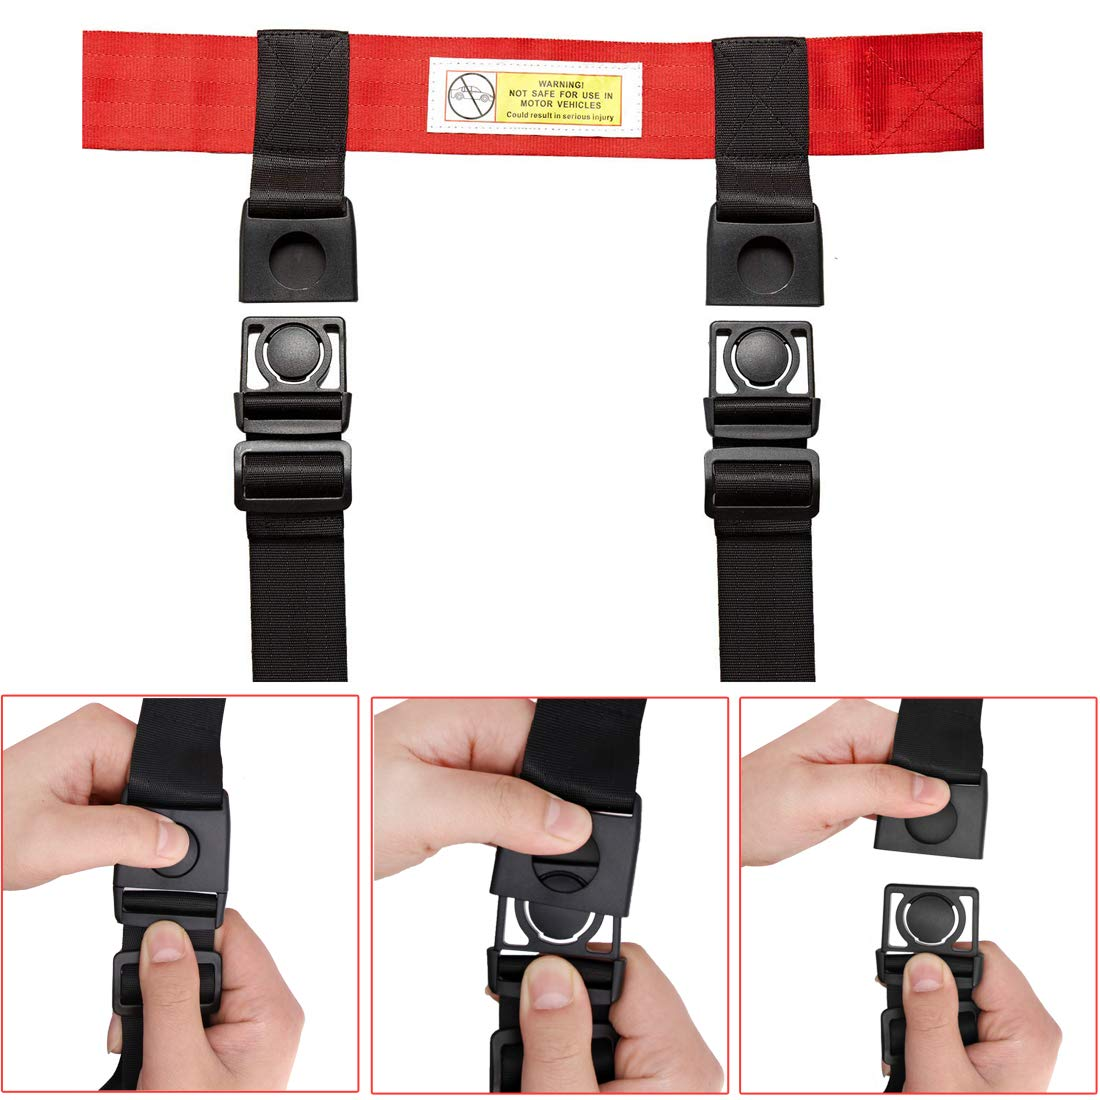 Child Airplane Travel Harness Safety Clip Strap Restraint System for Baby, Toddlers & Kids- for Airplane Travel Use Only by Together-life (Image #6)